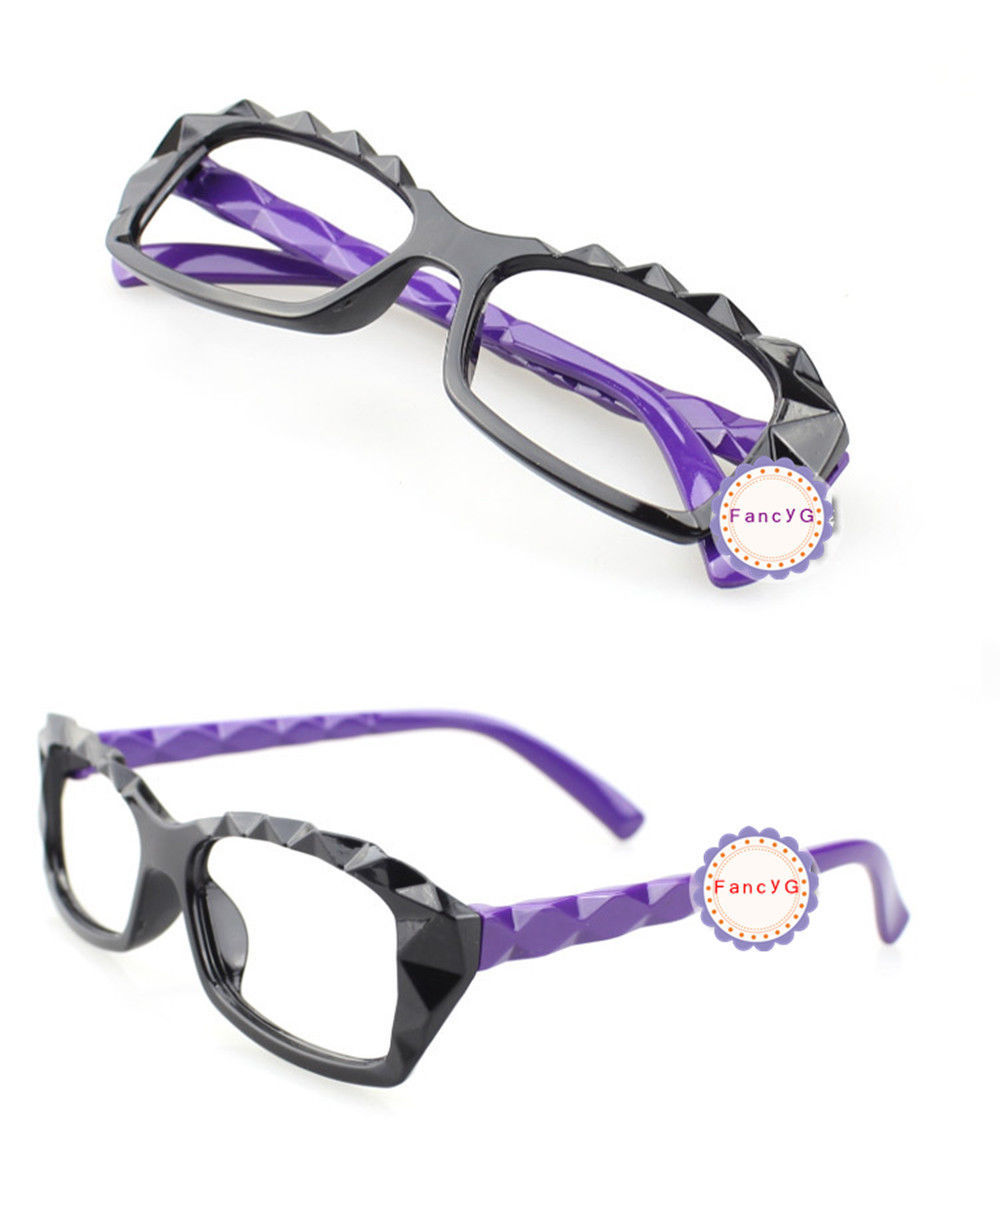 Purple Retro Classic Diamond Cut Fashion Glasses Frame Unisex Eyewear No Lens